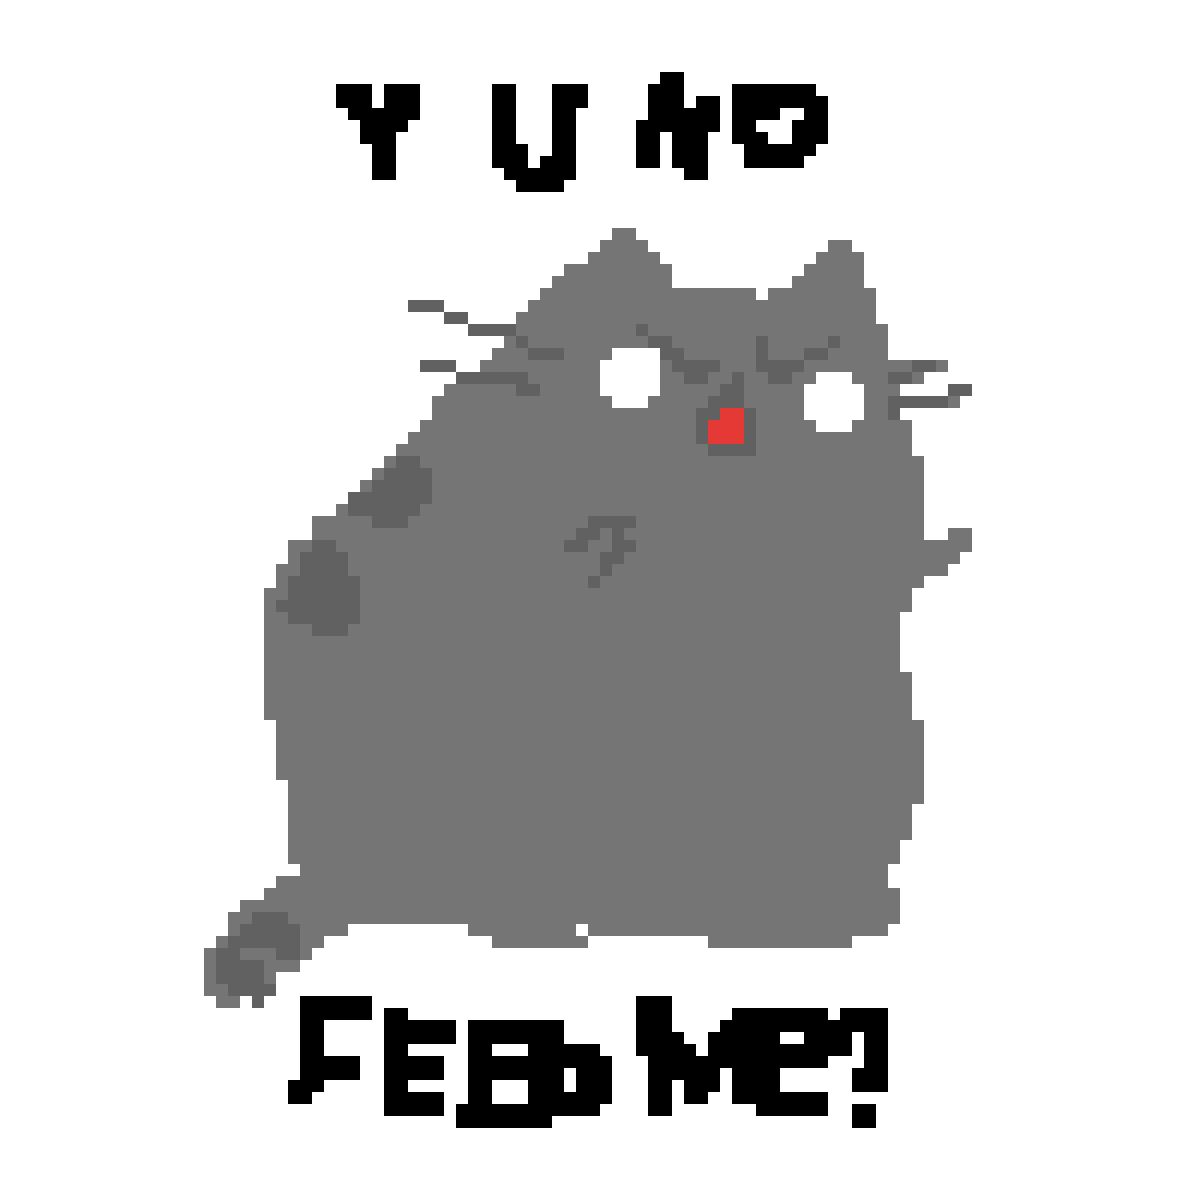 Y U NO FEED ME (pusheen)